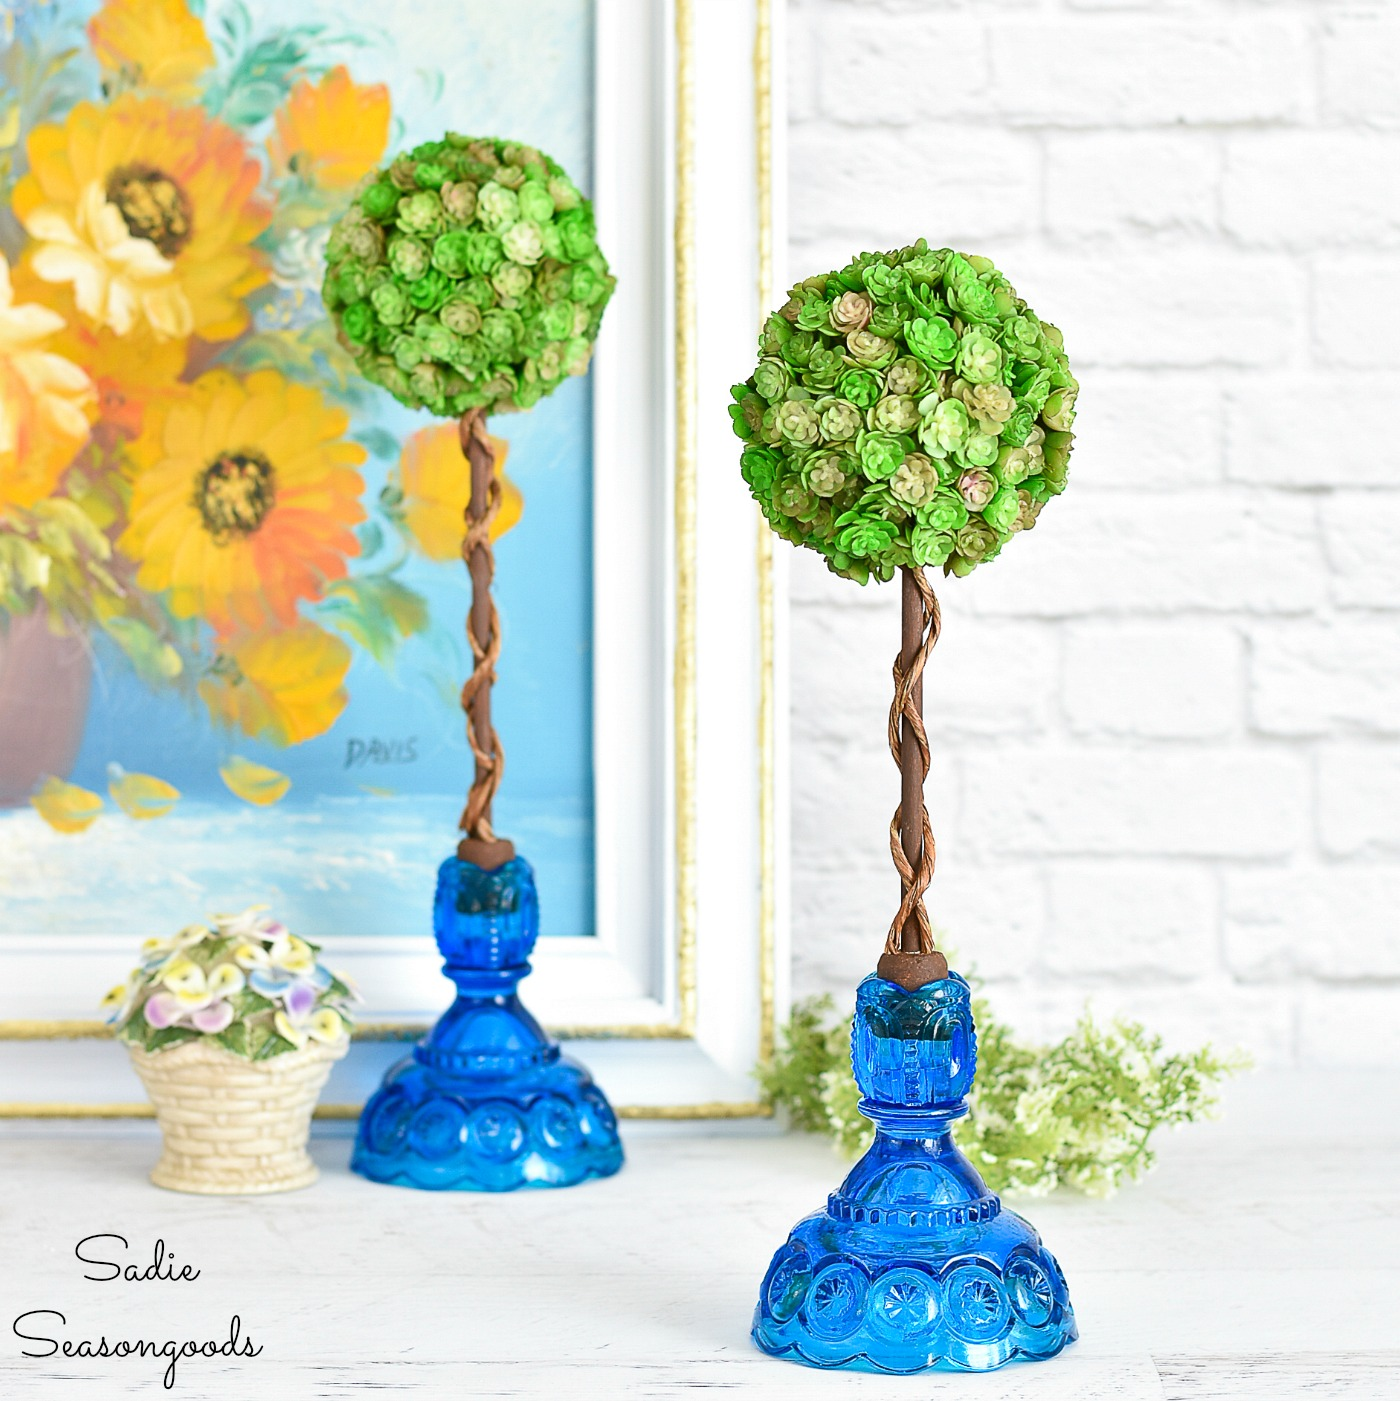 Artificial Topiary Trees in Vintage Candlesticks for Spring Decor